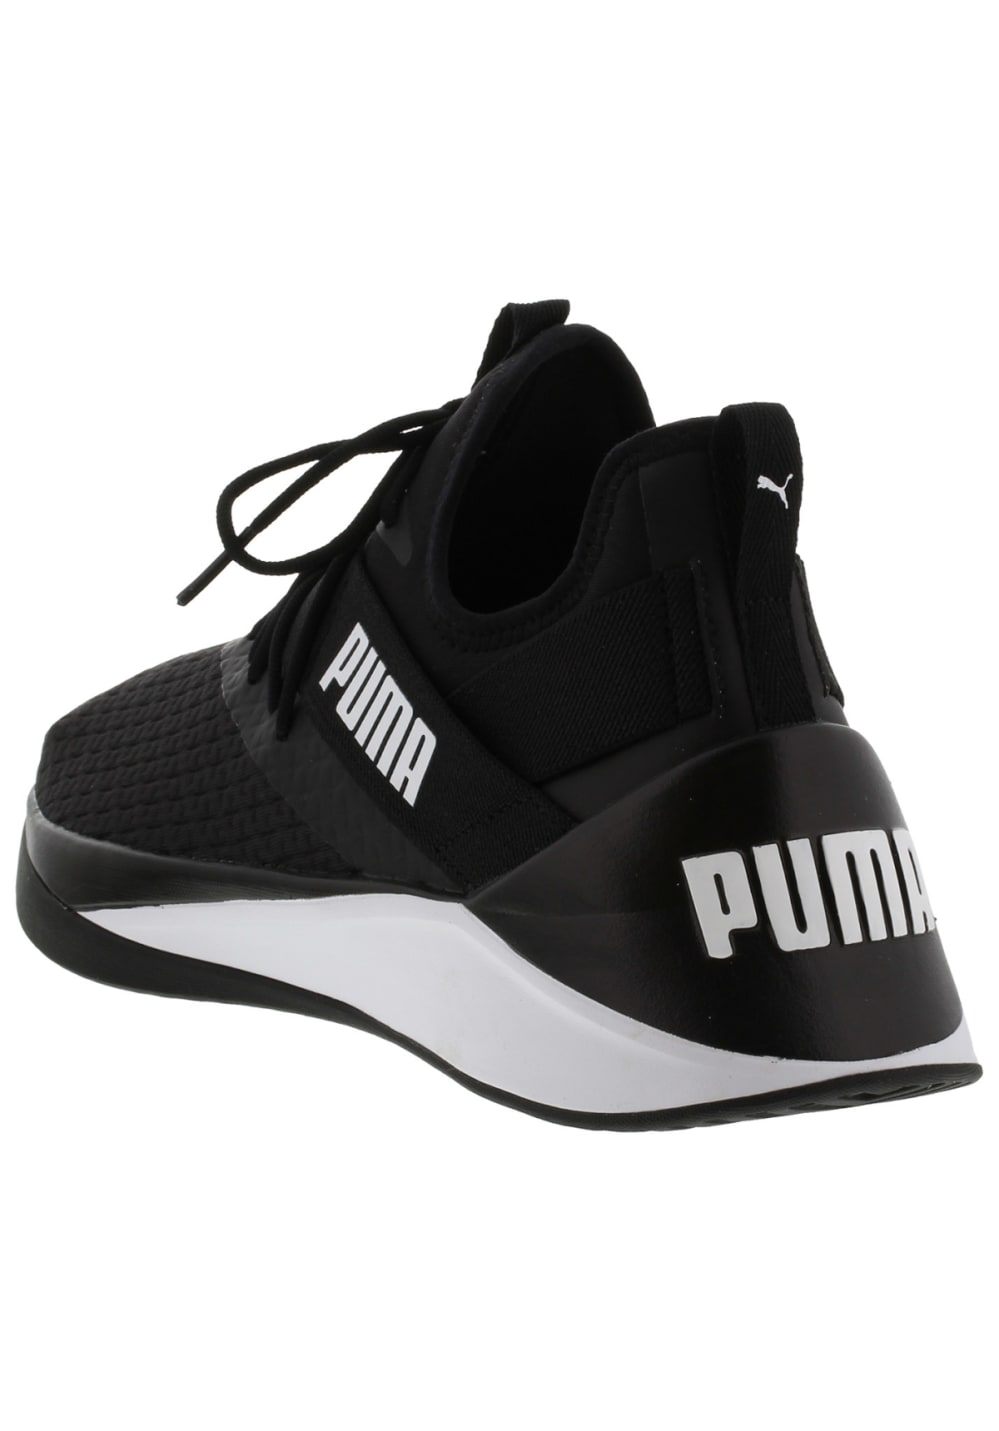 cheap for discount 63e86 b47c4 Next. Puma. Jaab XT - Fitness shoes for Men. €79.95. incl. VAT, plus  shipping costs